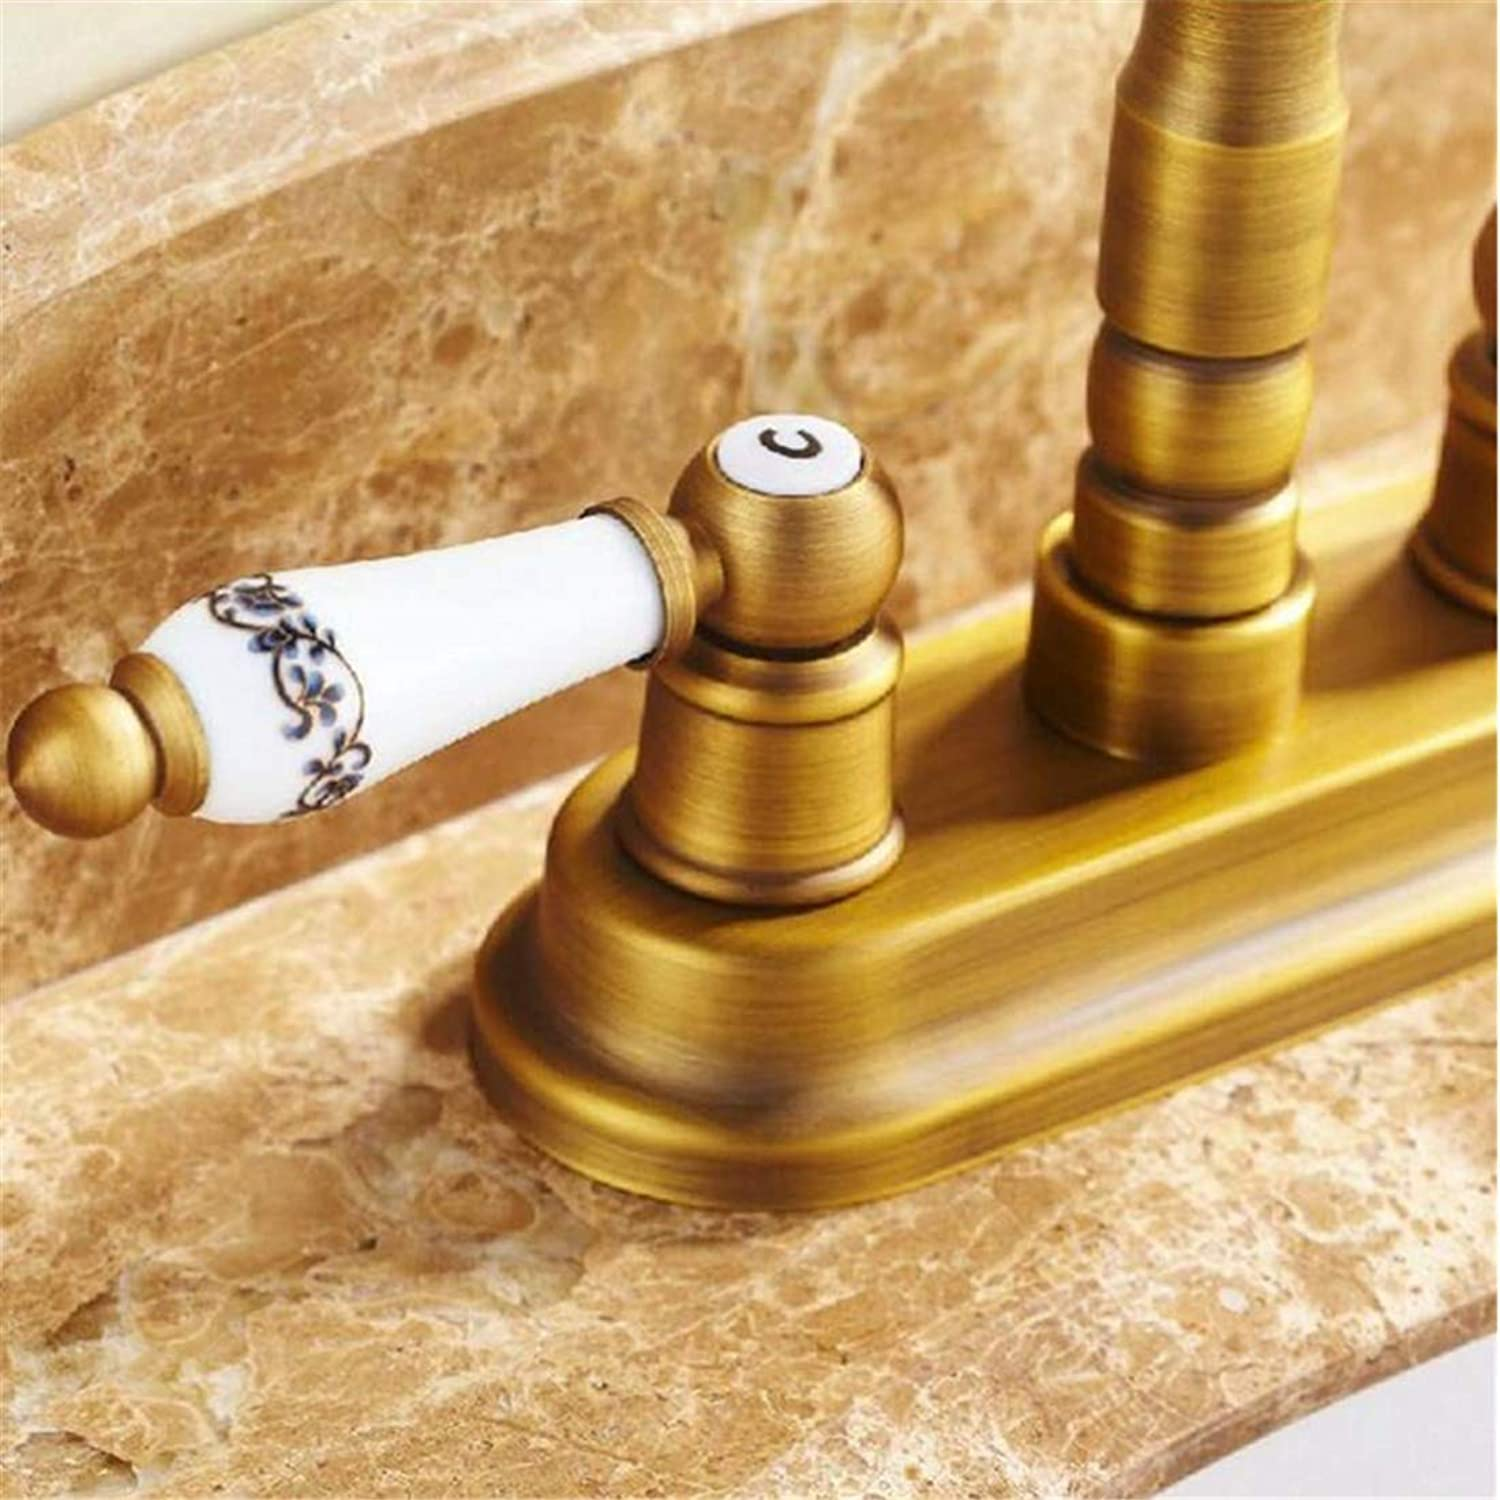 Retro Faucetsolid Brass Basin Mixer Tap Deck Mounted